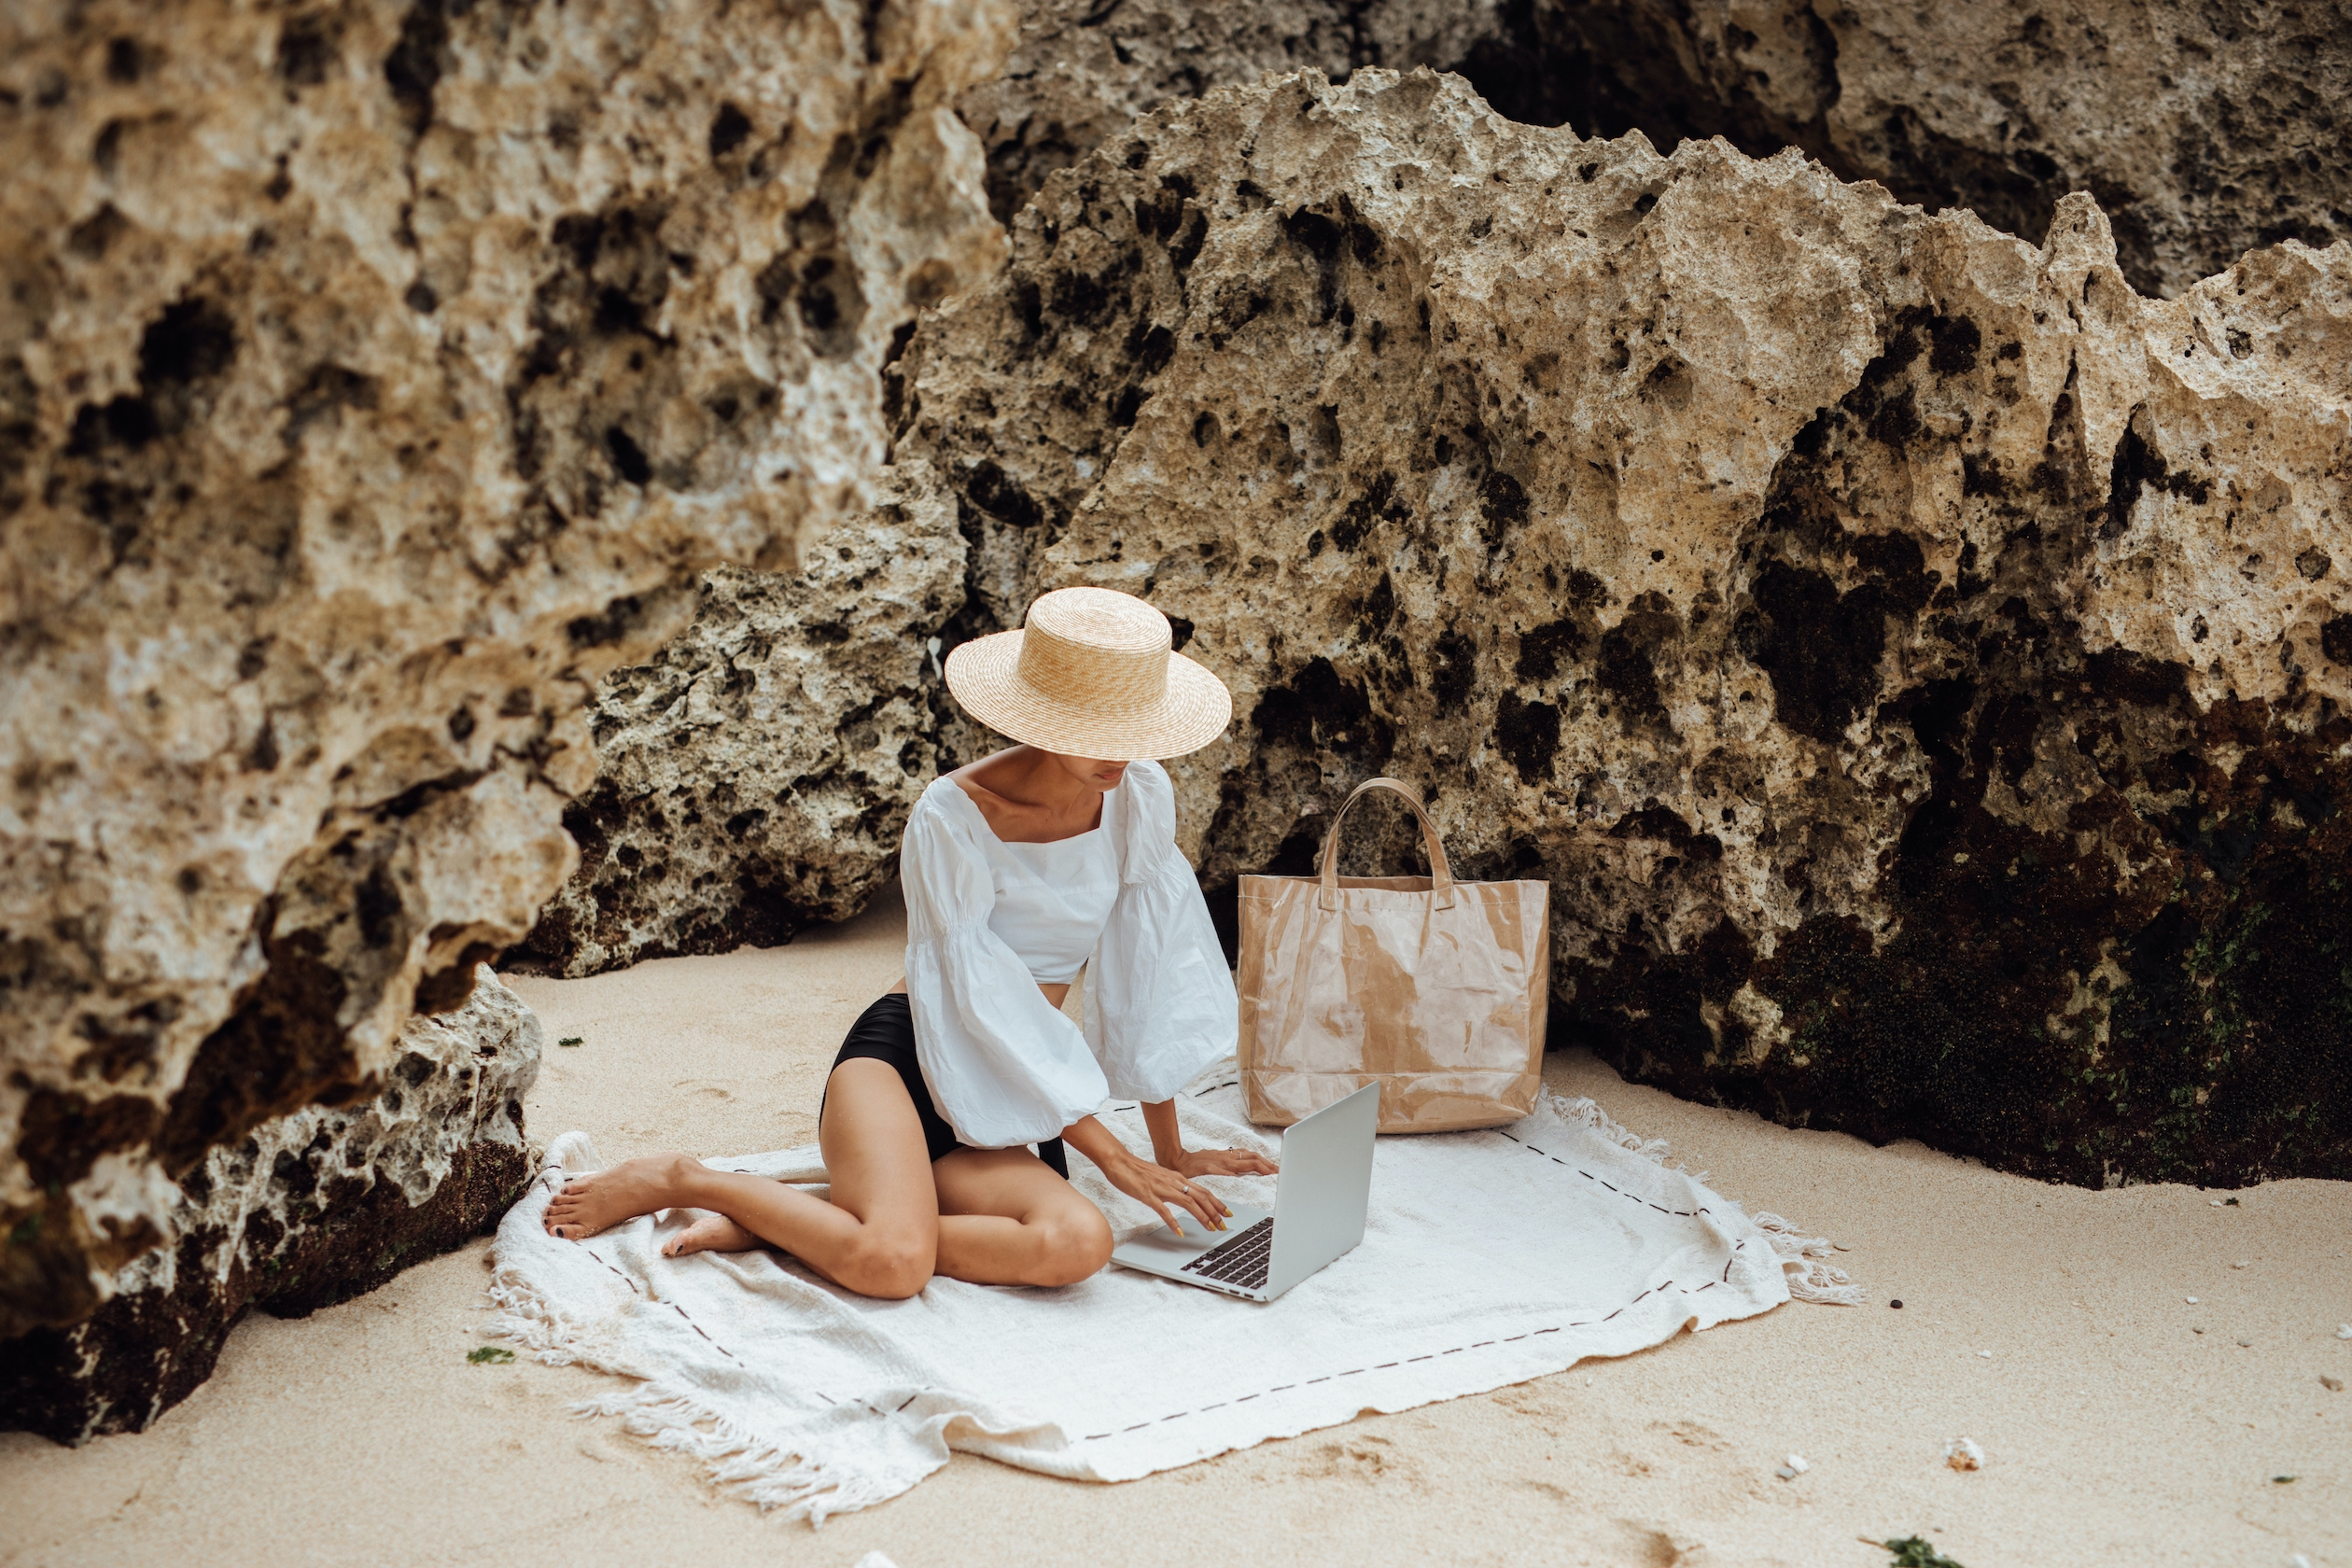 Image of a person reading on their laptop while relaxing at a beach.